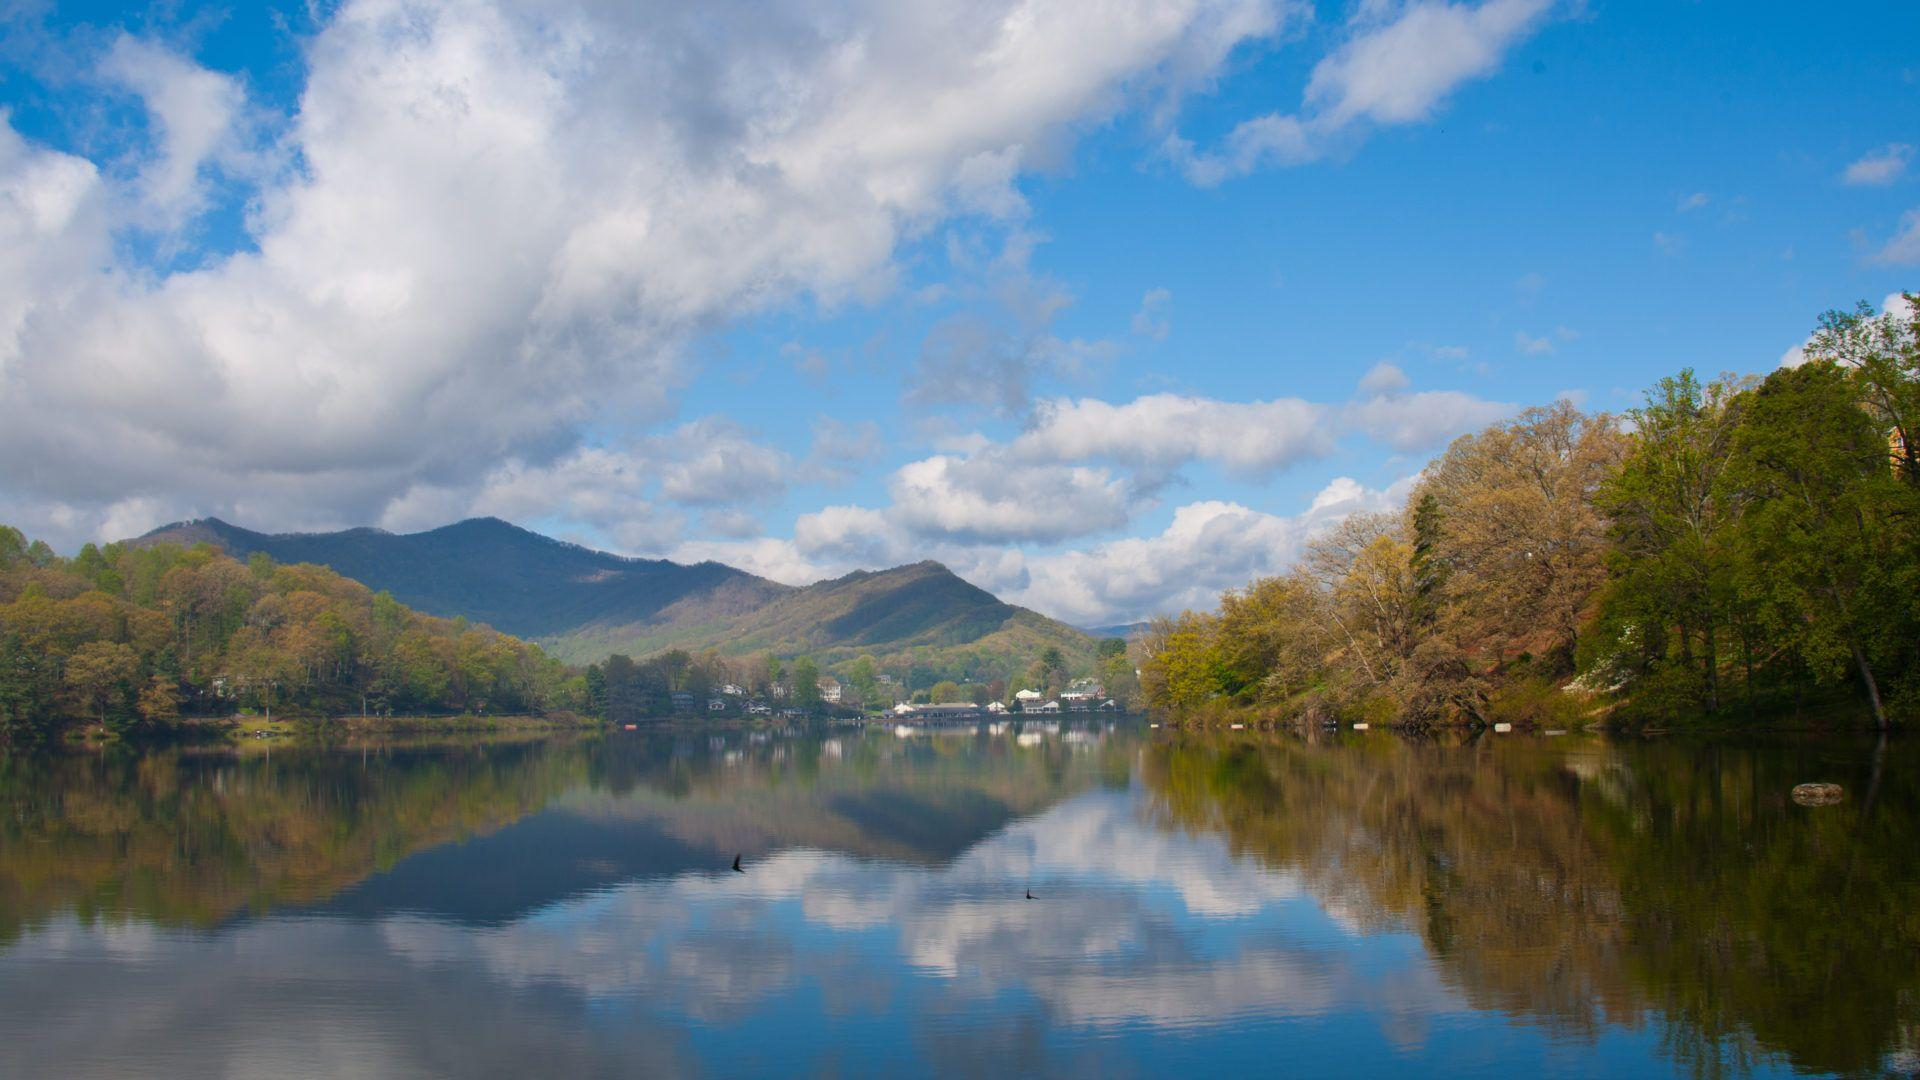 The Blue Ridge Parkway: An intricate connection to Lake Junaluska